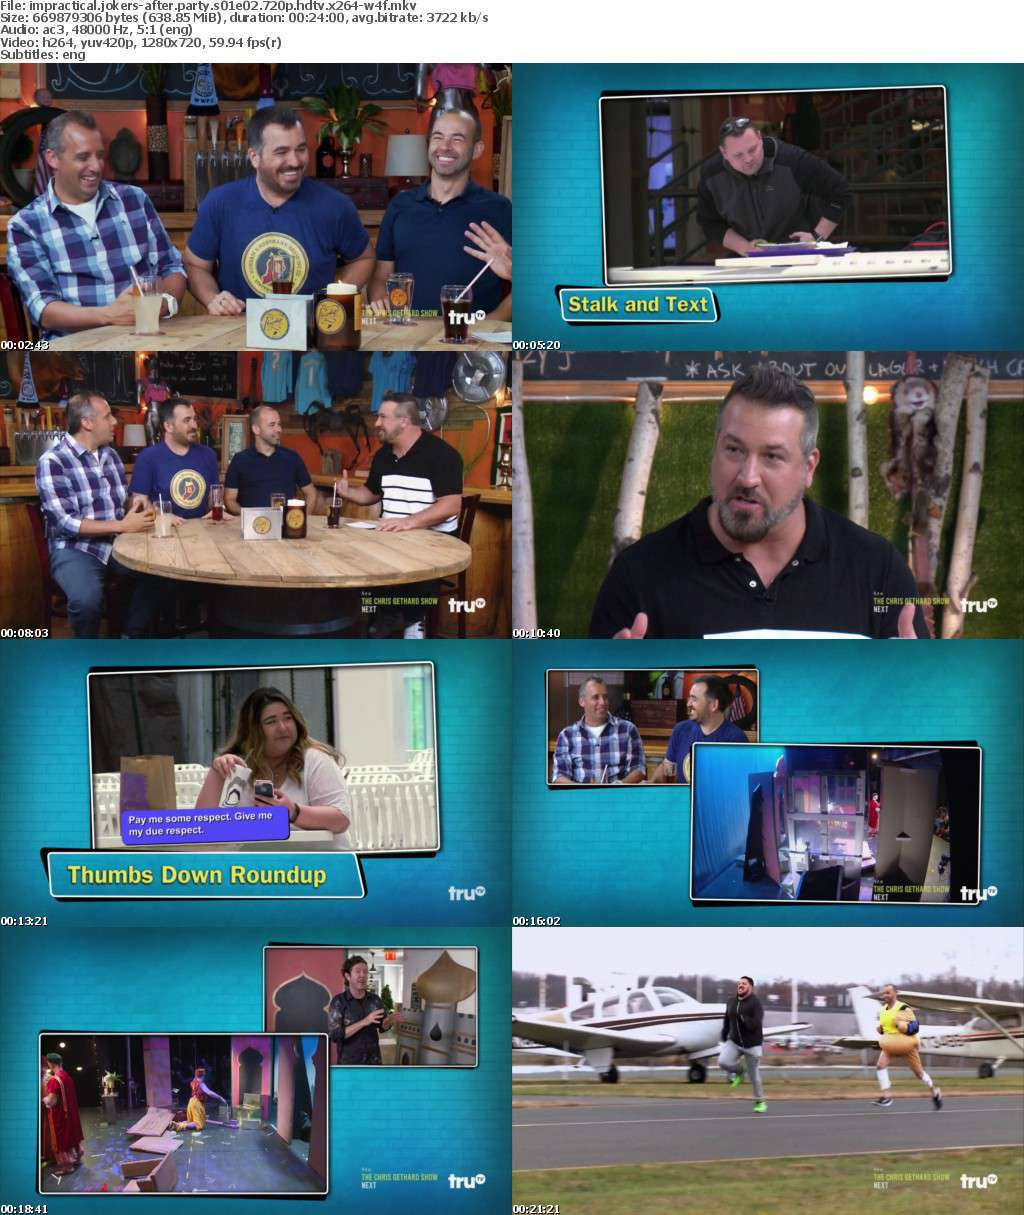 Impractical Jokers-After Party S01E02 720p HDTV x264-W4F